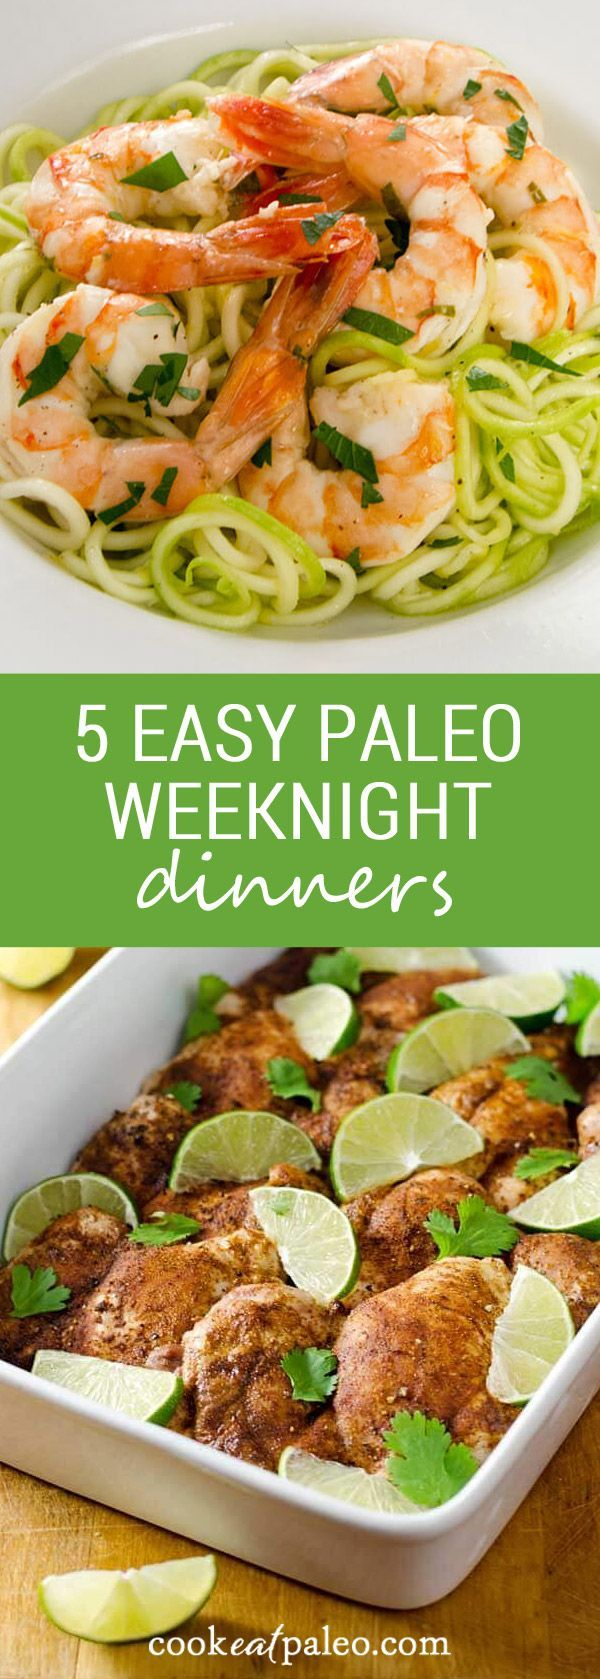 Easy paleo weeknight dinners for when you need to get supper on the table. These go-to recipes make eating paleo every day easier. {gluten-free, grain-free, paleo} ~ http://cookeatpaleo.com